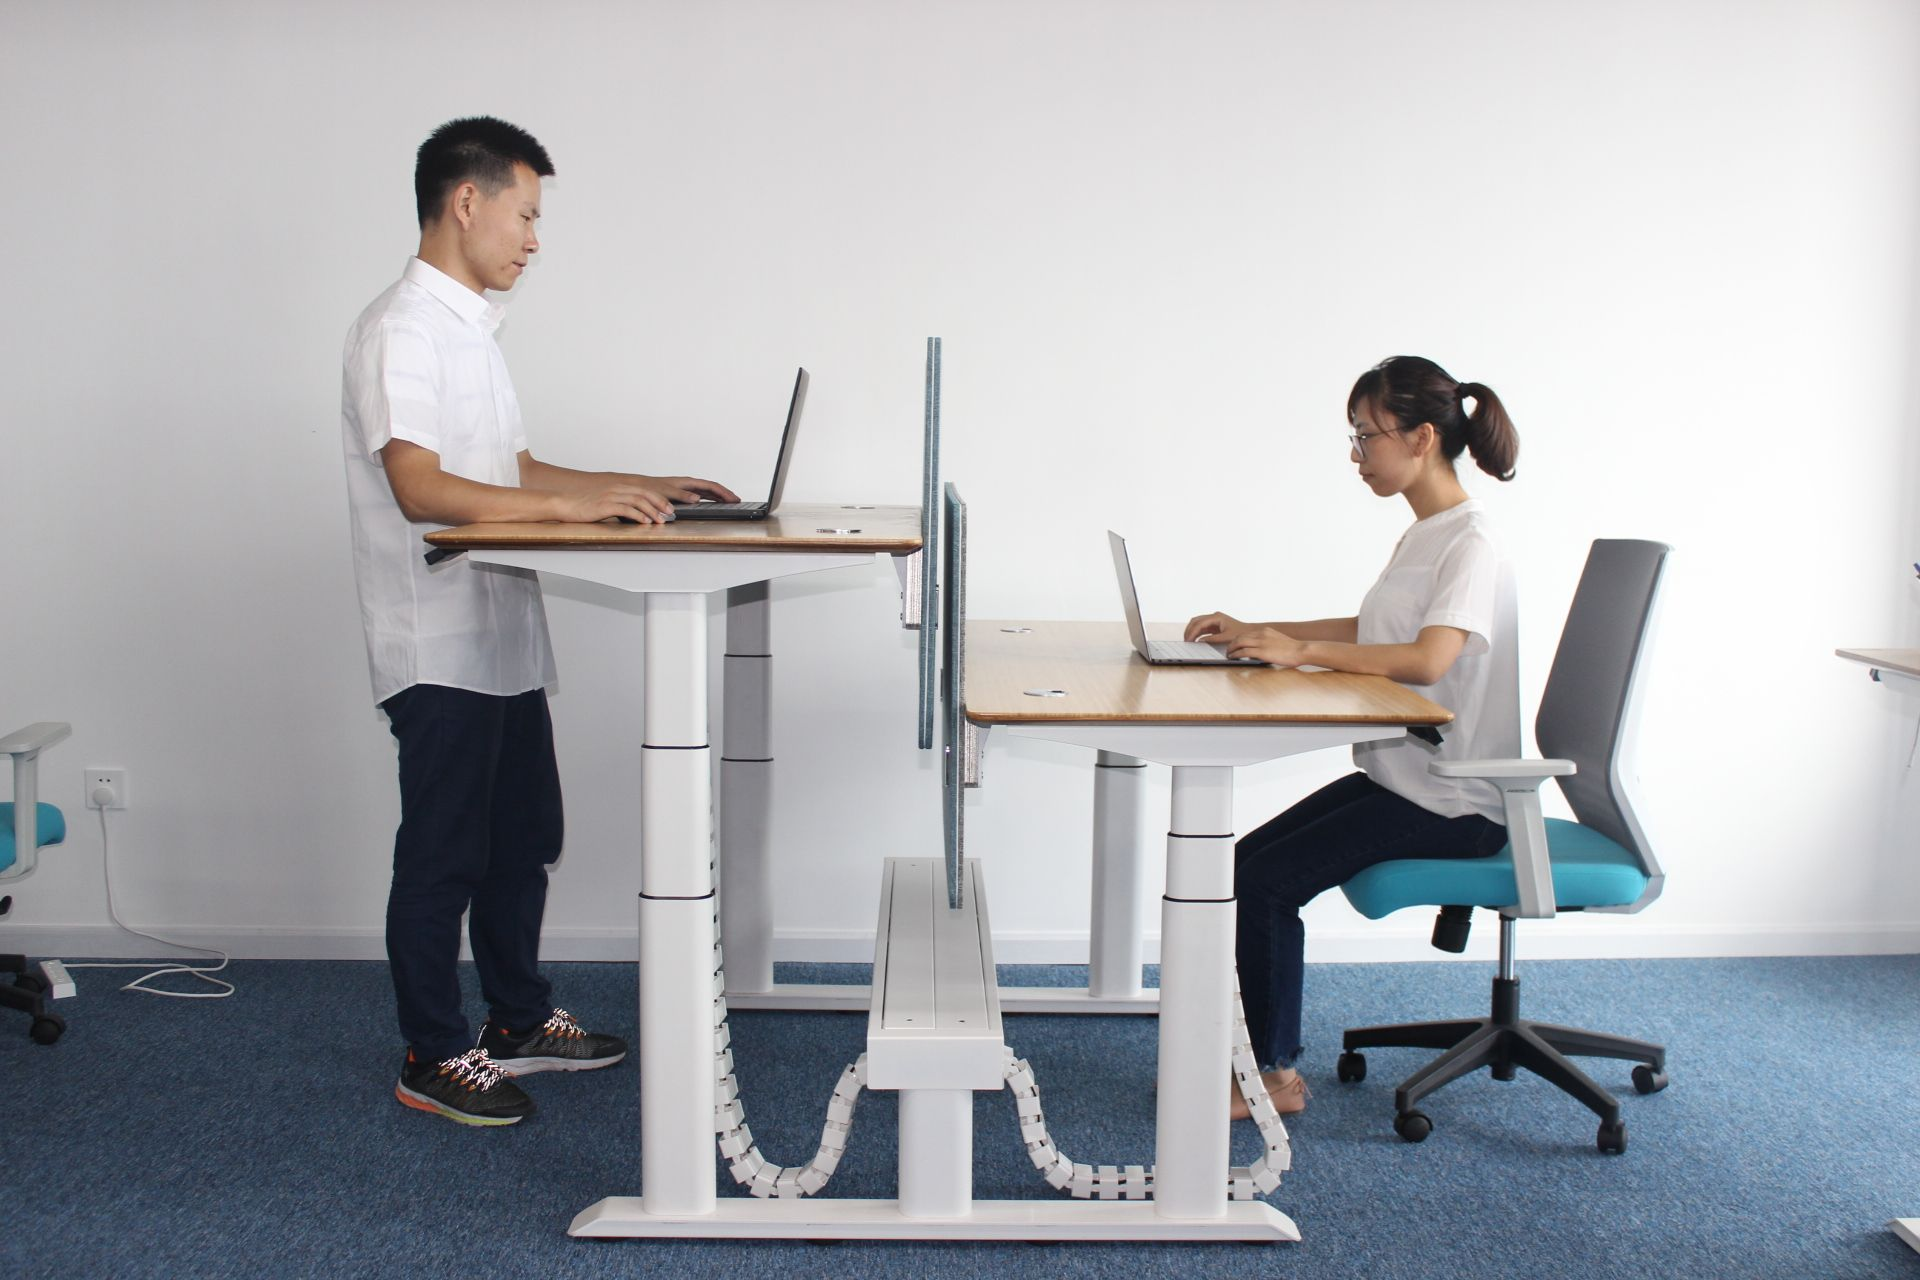 H Shape For Double People Workstation Office Furniture Layout Desk Layout Office Furniture Standing Desk